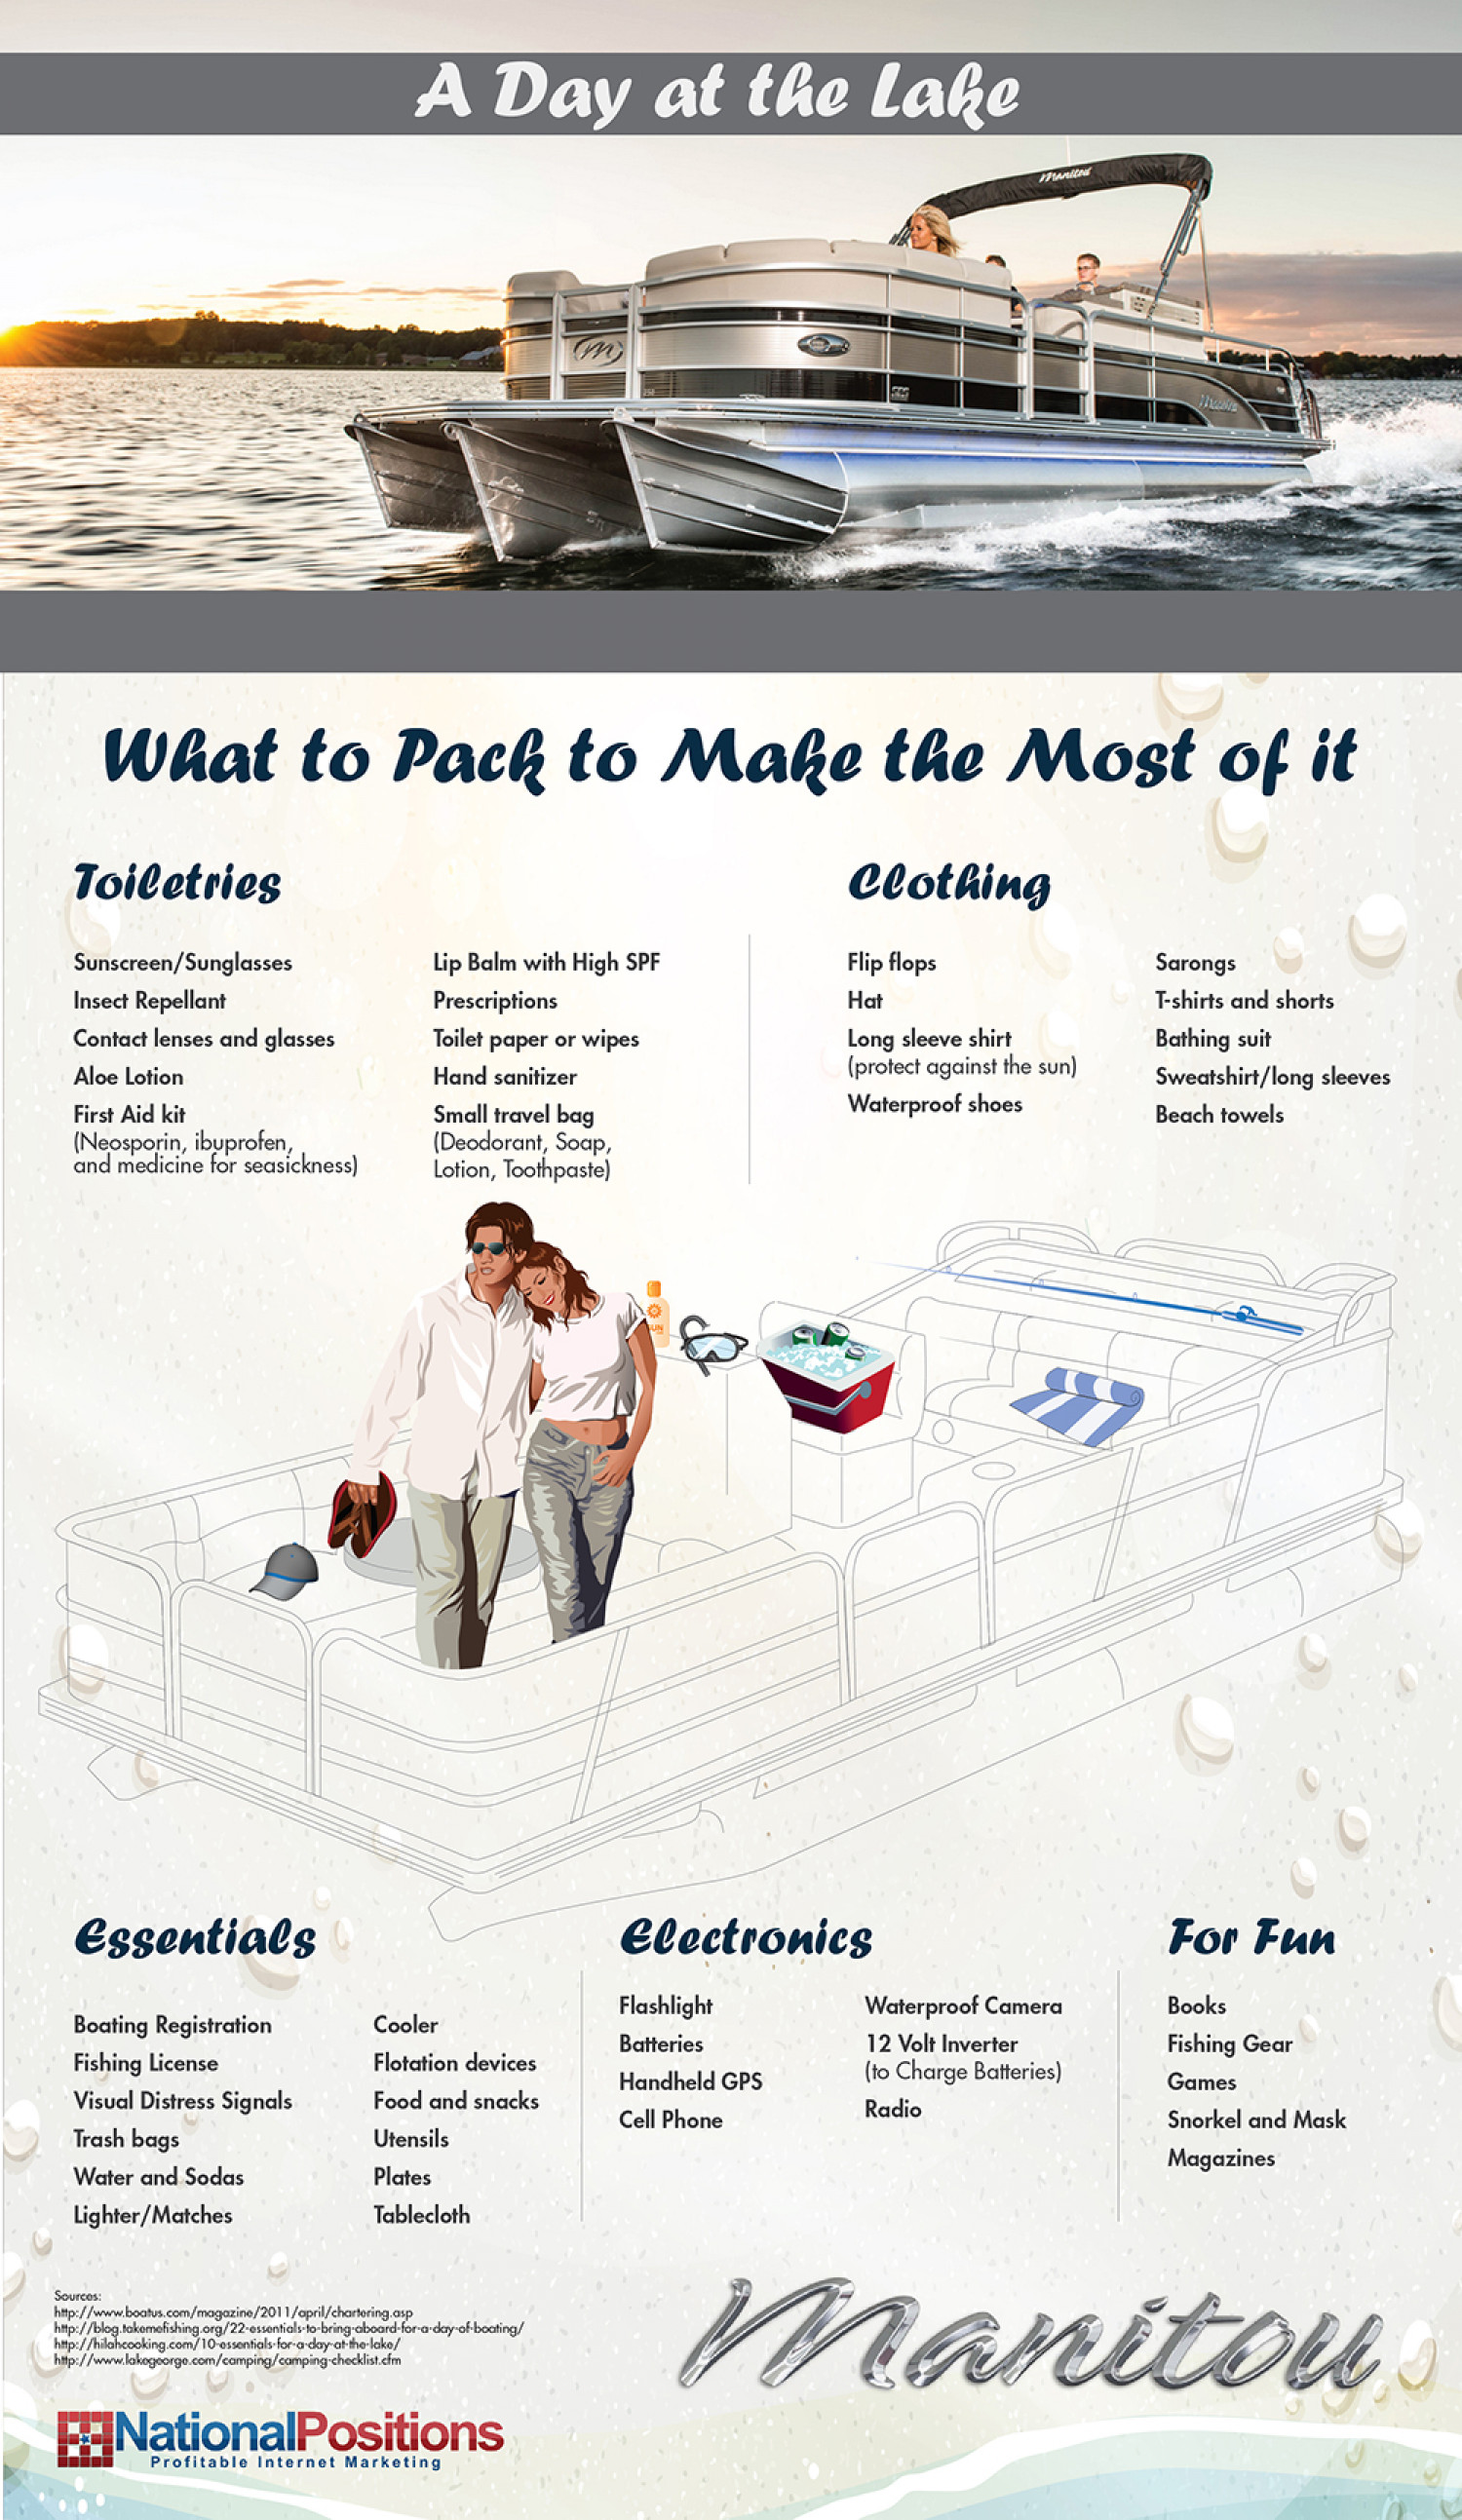 A Day at the Lake Infographic